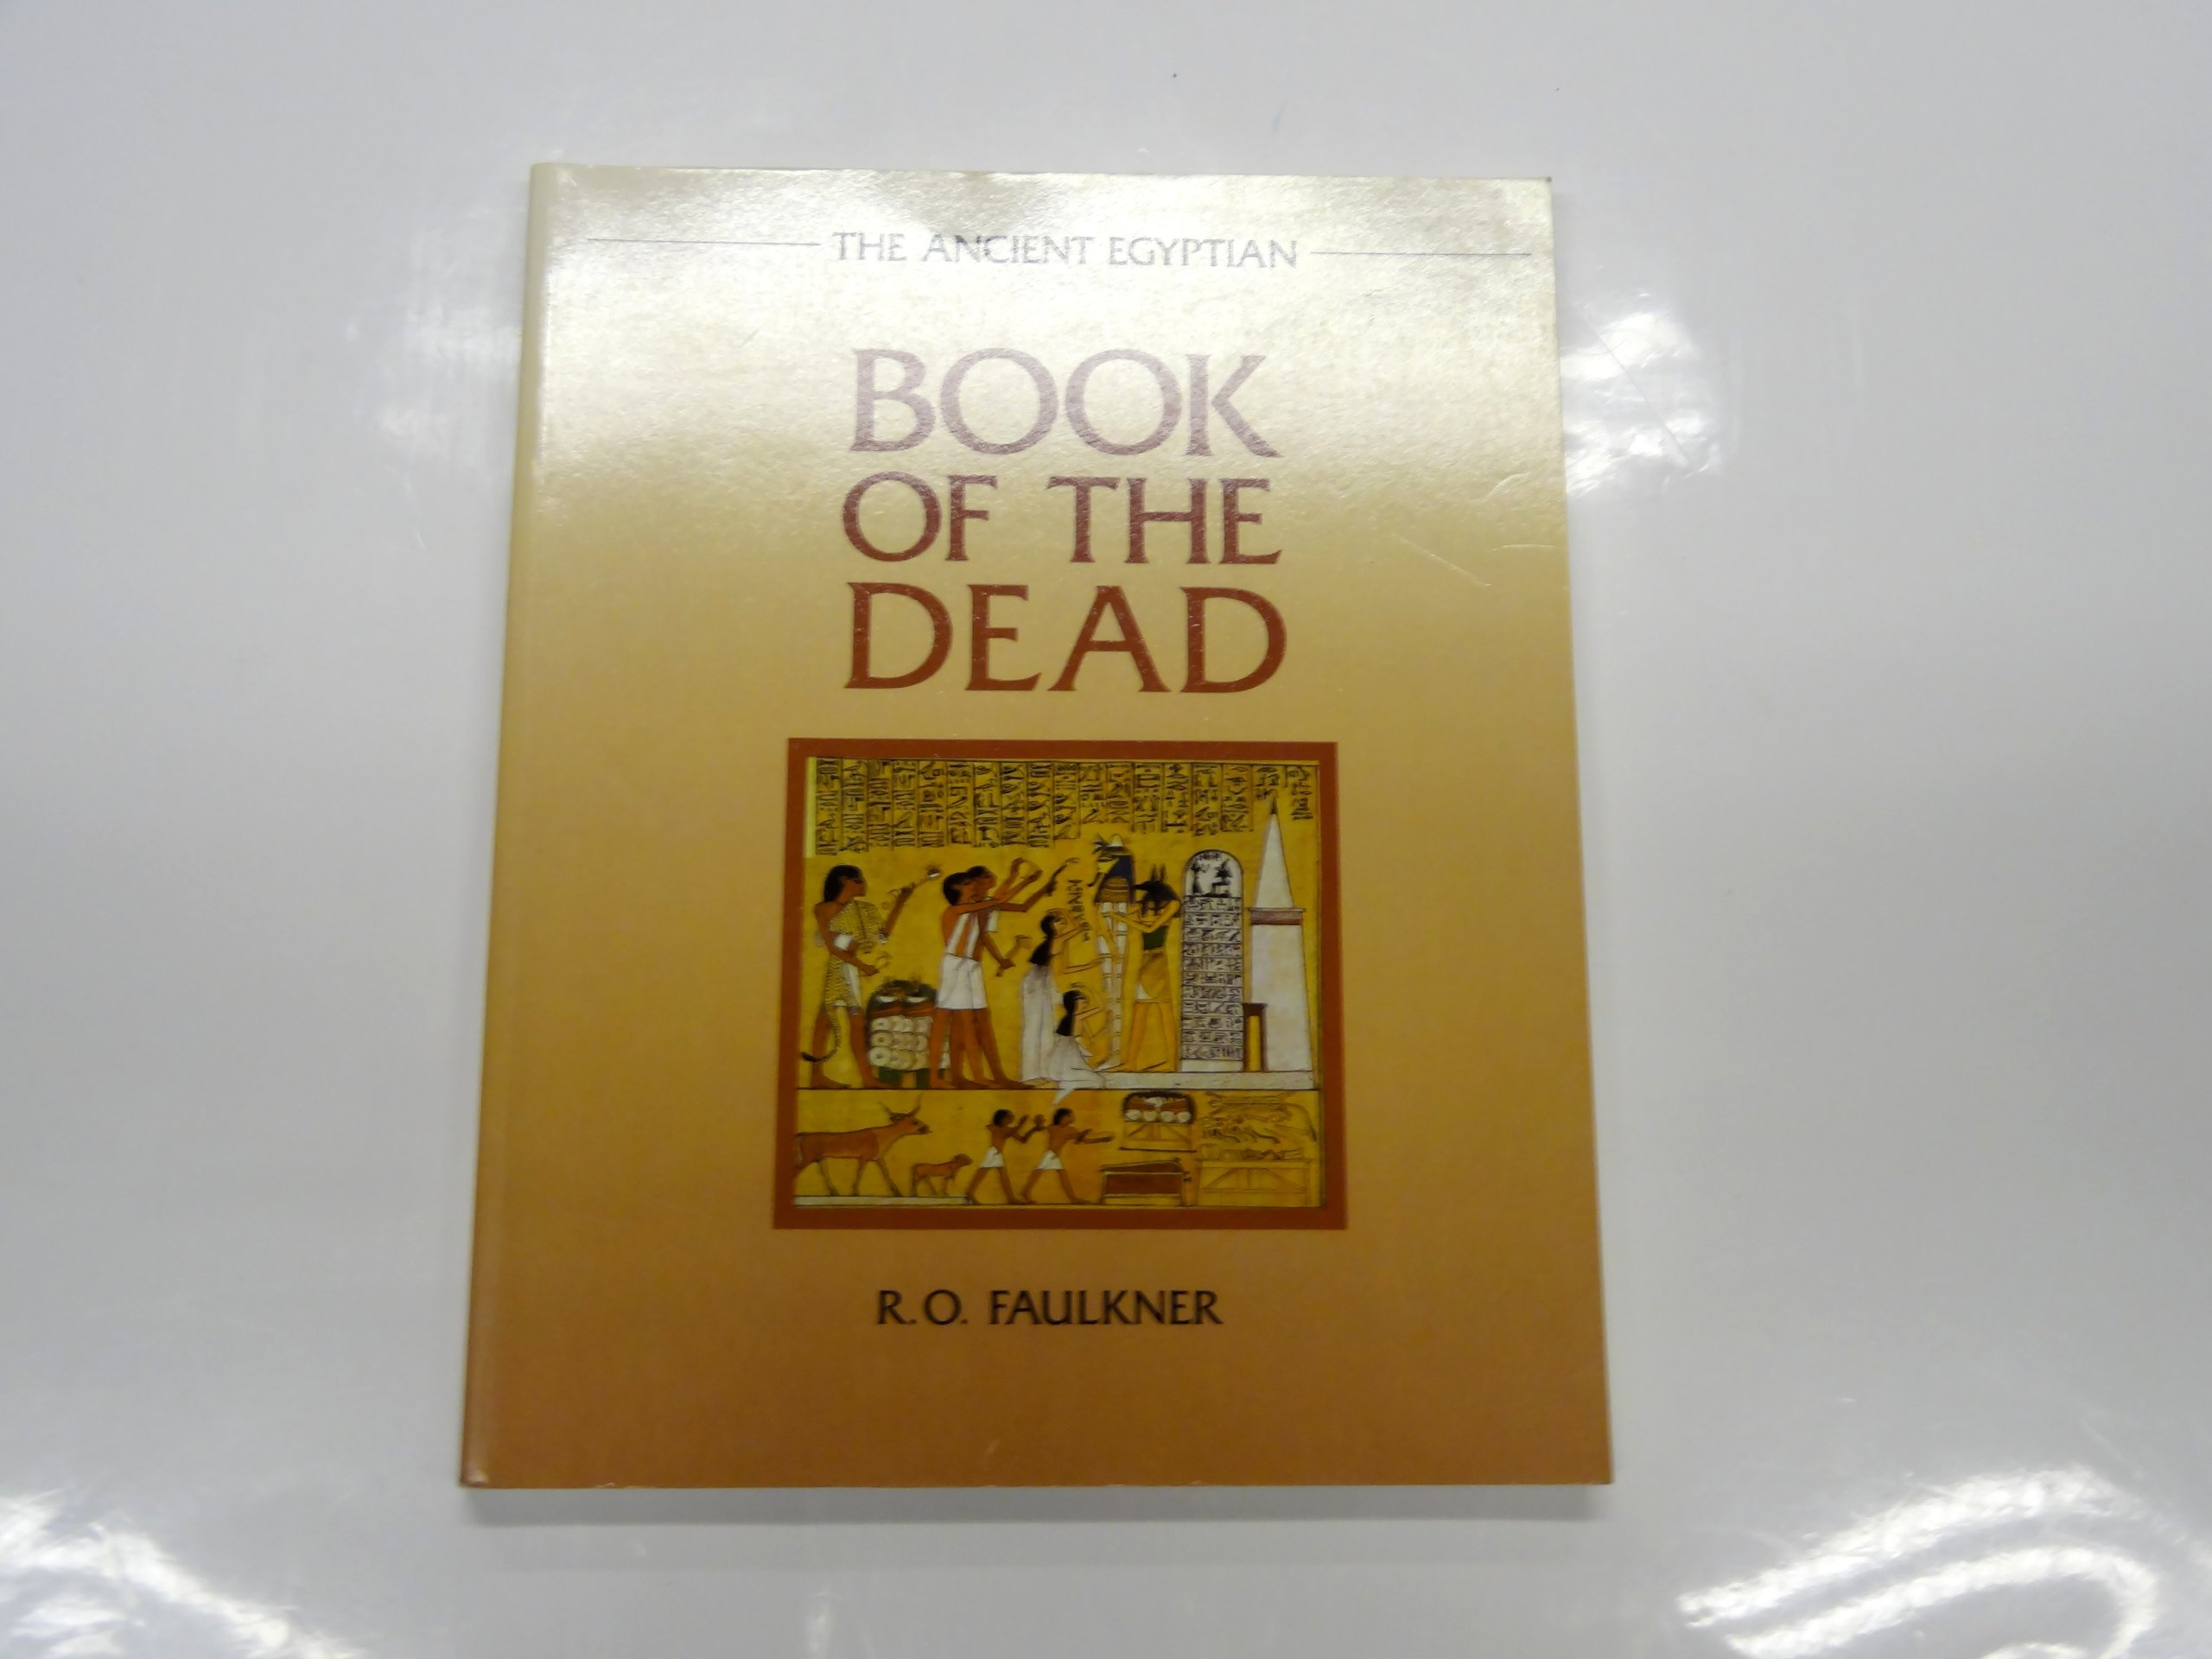 The Ancient Egyptian Book of the Dead, Raymond Faulkner